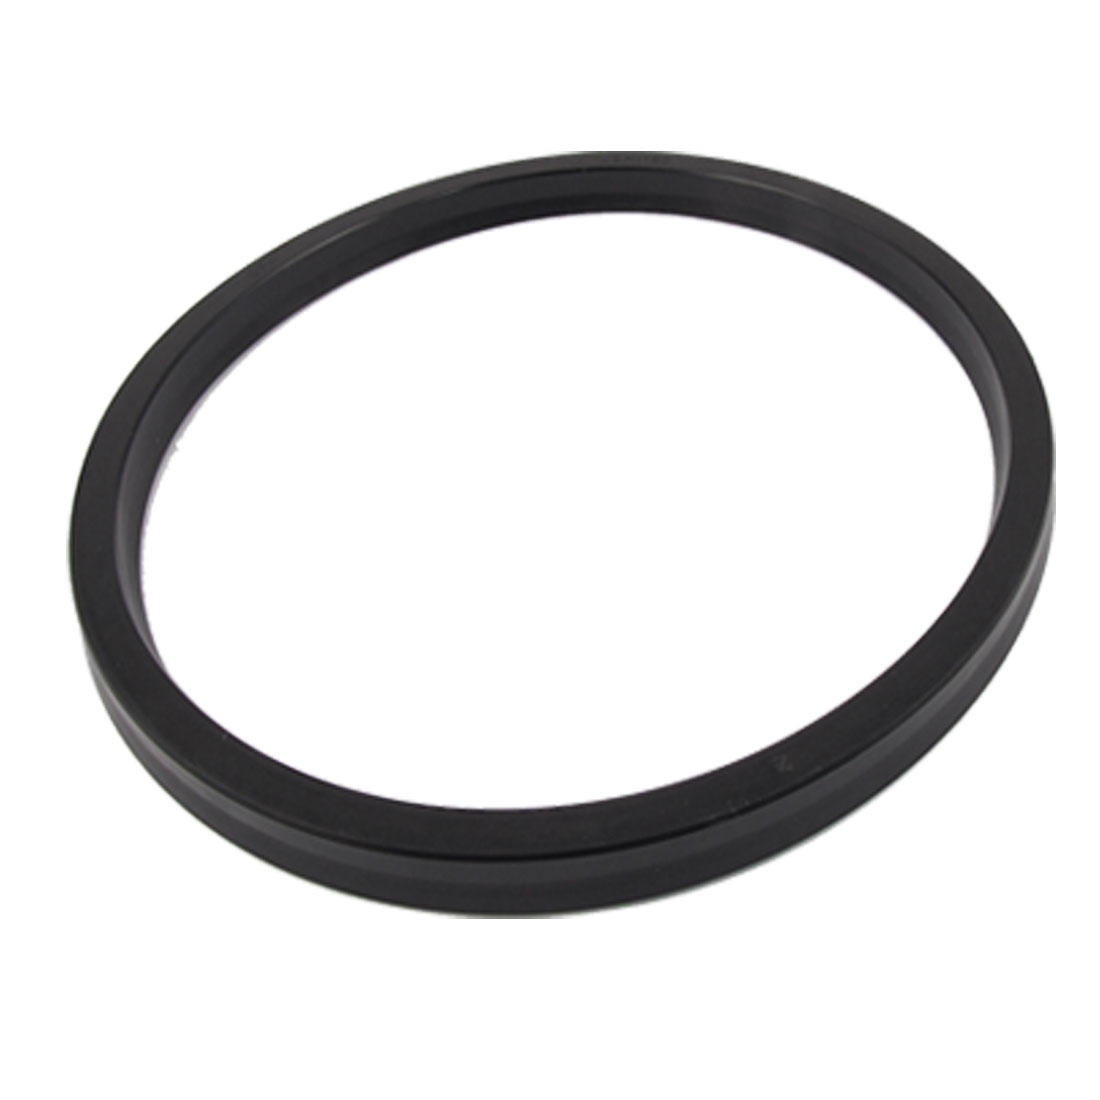 180mm x 200mm x 12mm USH Rubber Oil Seal Ring for Automobile Pump